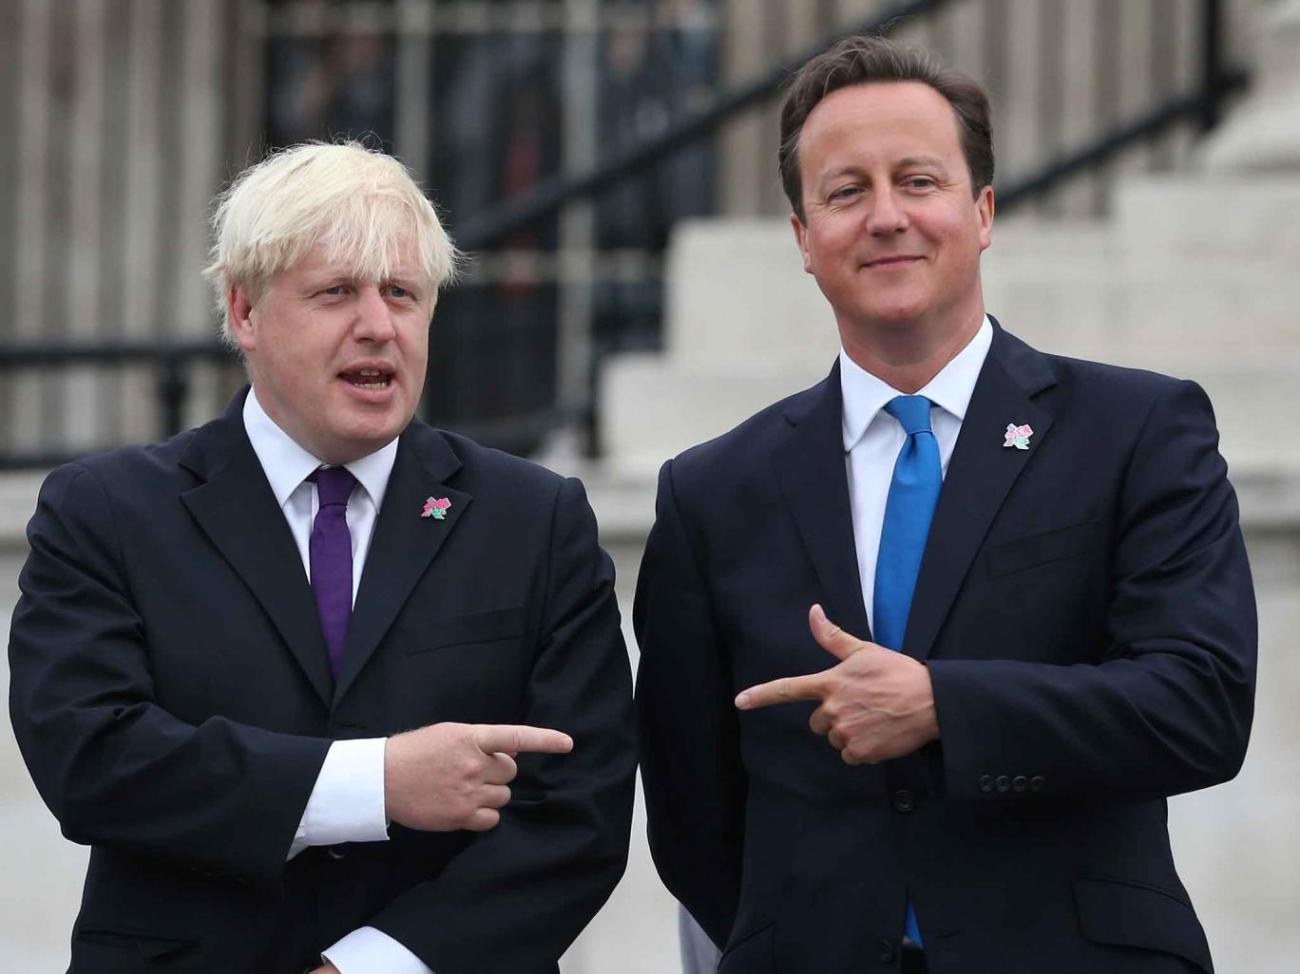 Boris Johnson & David Cameron